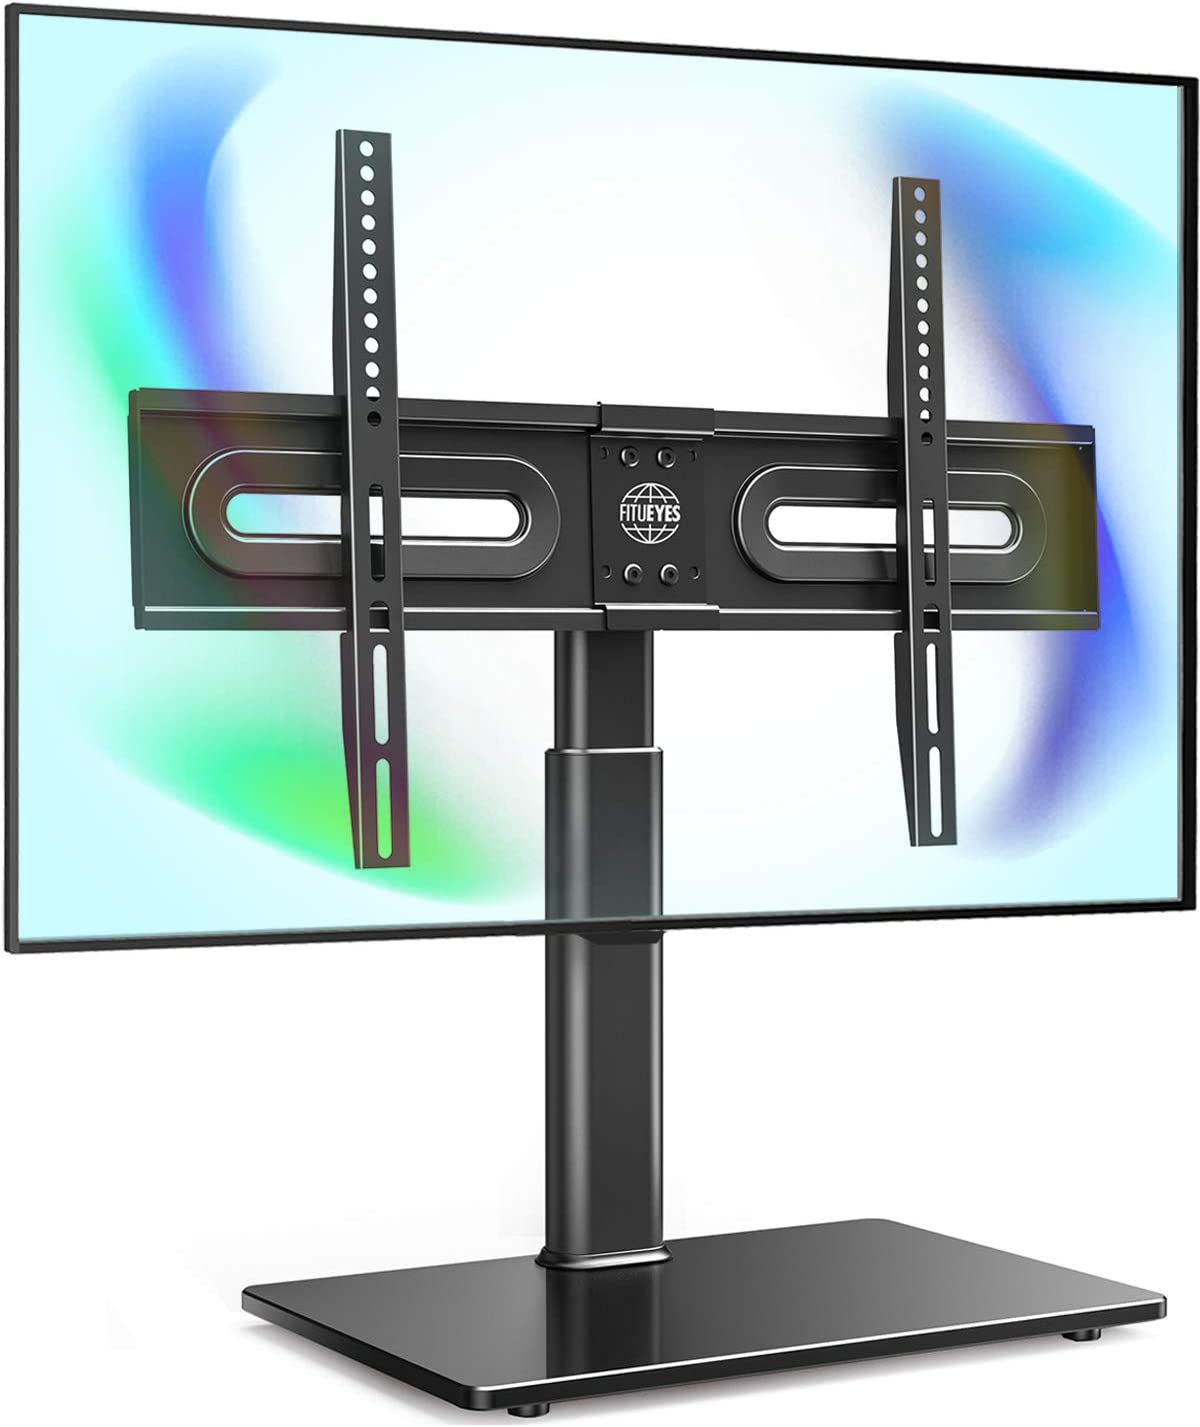 Fitueyes Universal Tv Stand Base Tabletop Tv Stand With Swivel Mount For 32 To 65 Inch Flat Screen Tv Height Adjustable Tempered Glass Base Tt105202gb Furniture Decor Amazon Com